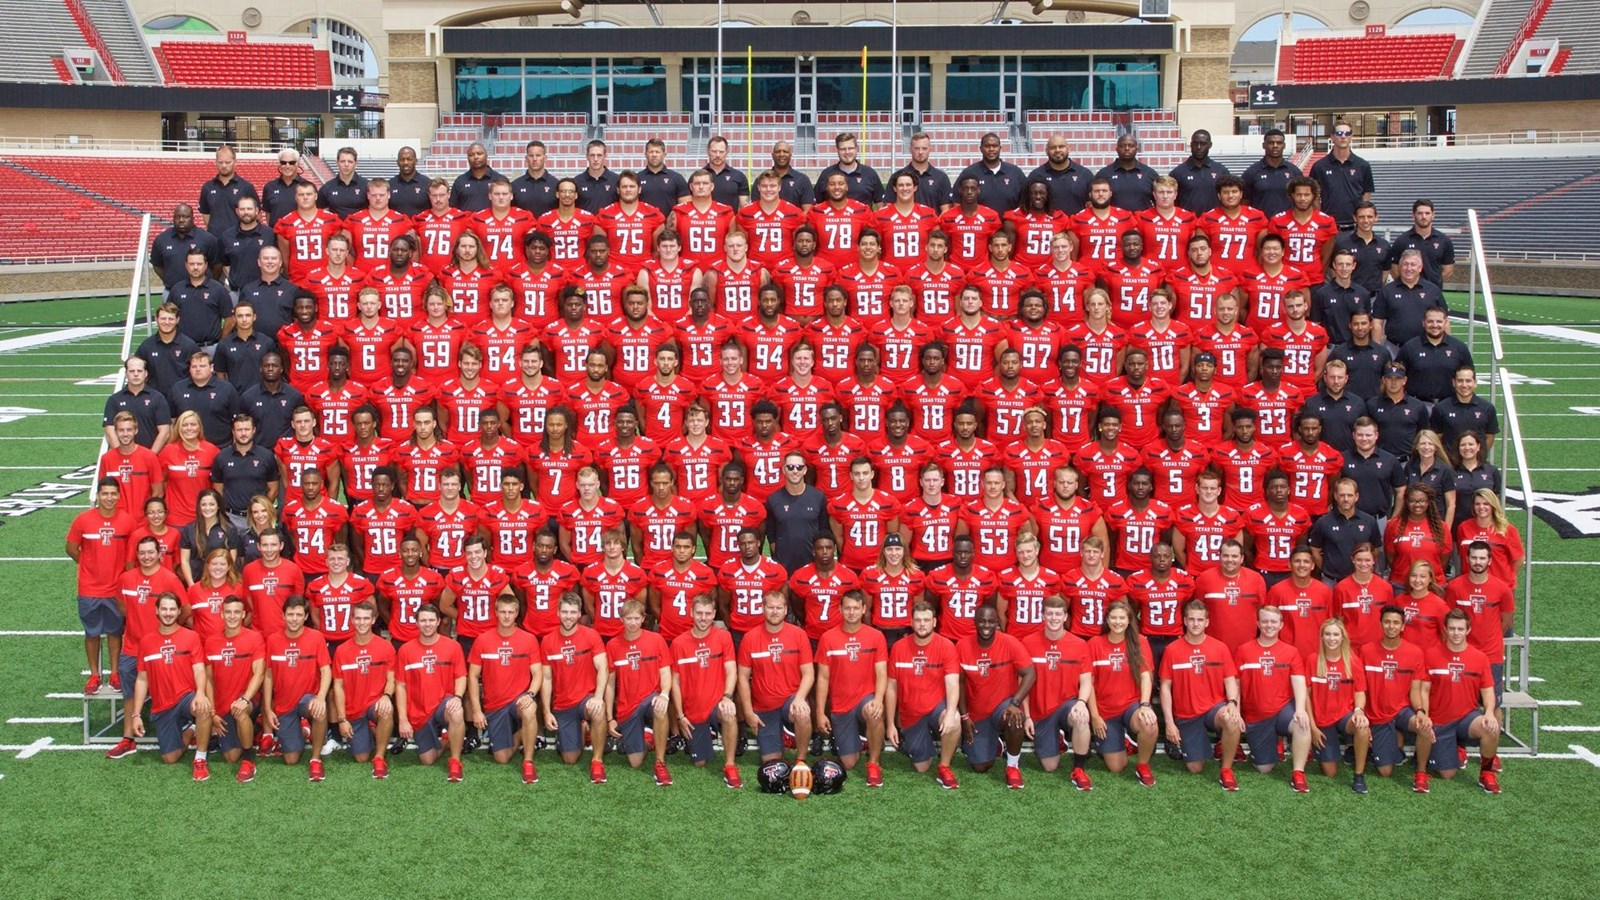 2017 Football Roster Texas Tech Red Raiders